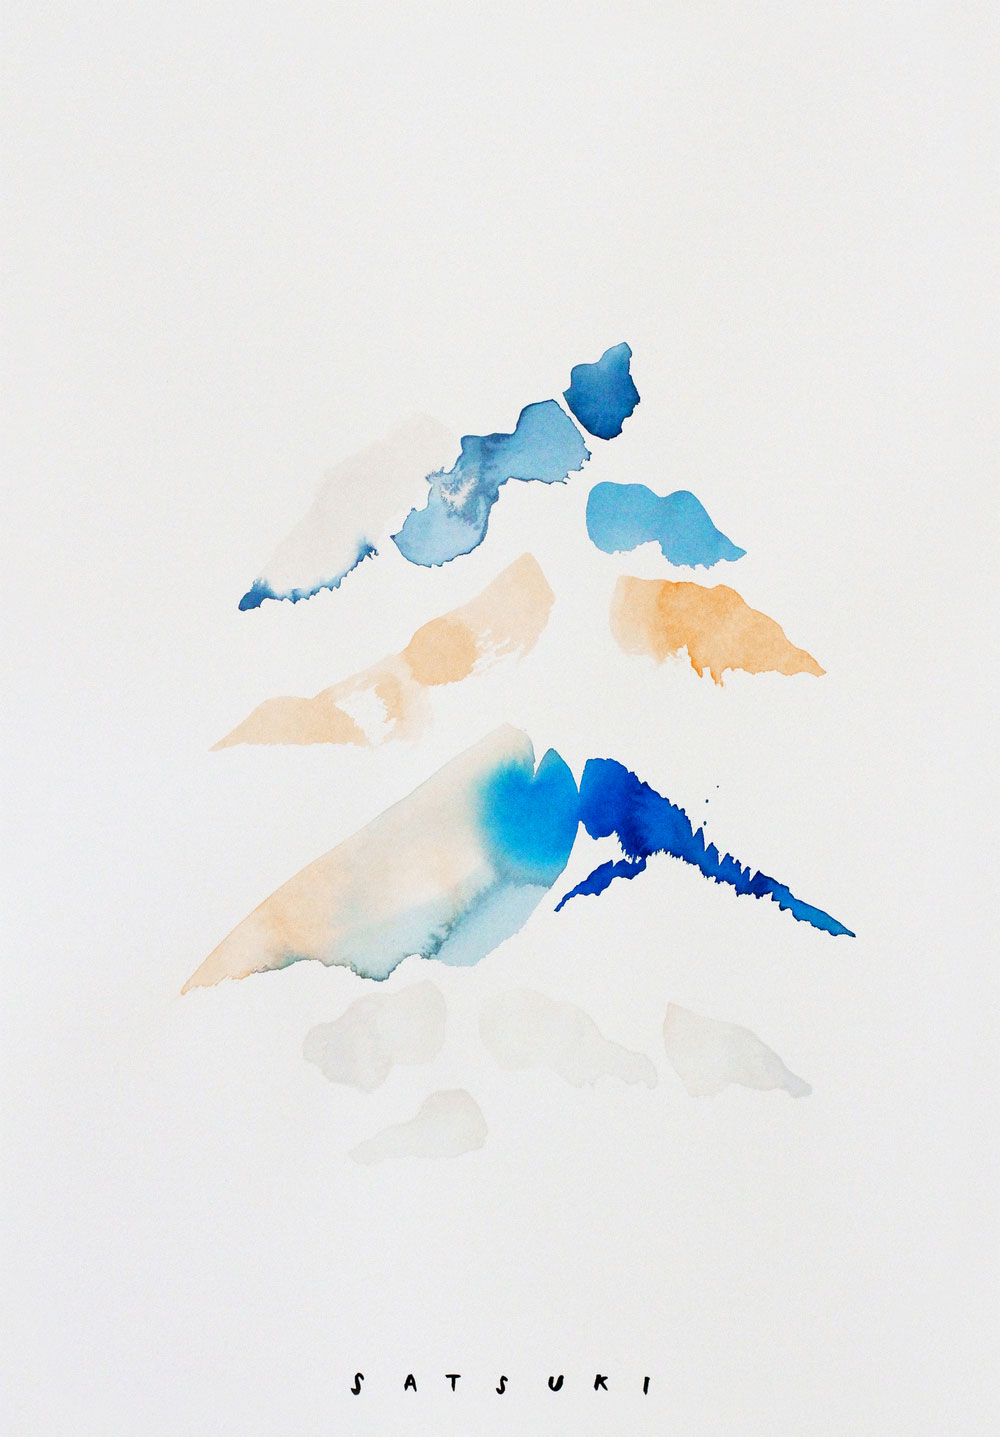 Satsuki Shibuya, artist & spiritual thinker | abstract watercolor painting